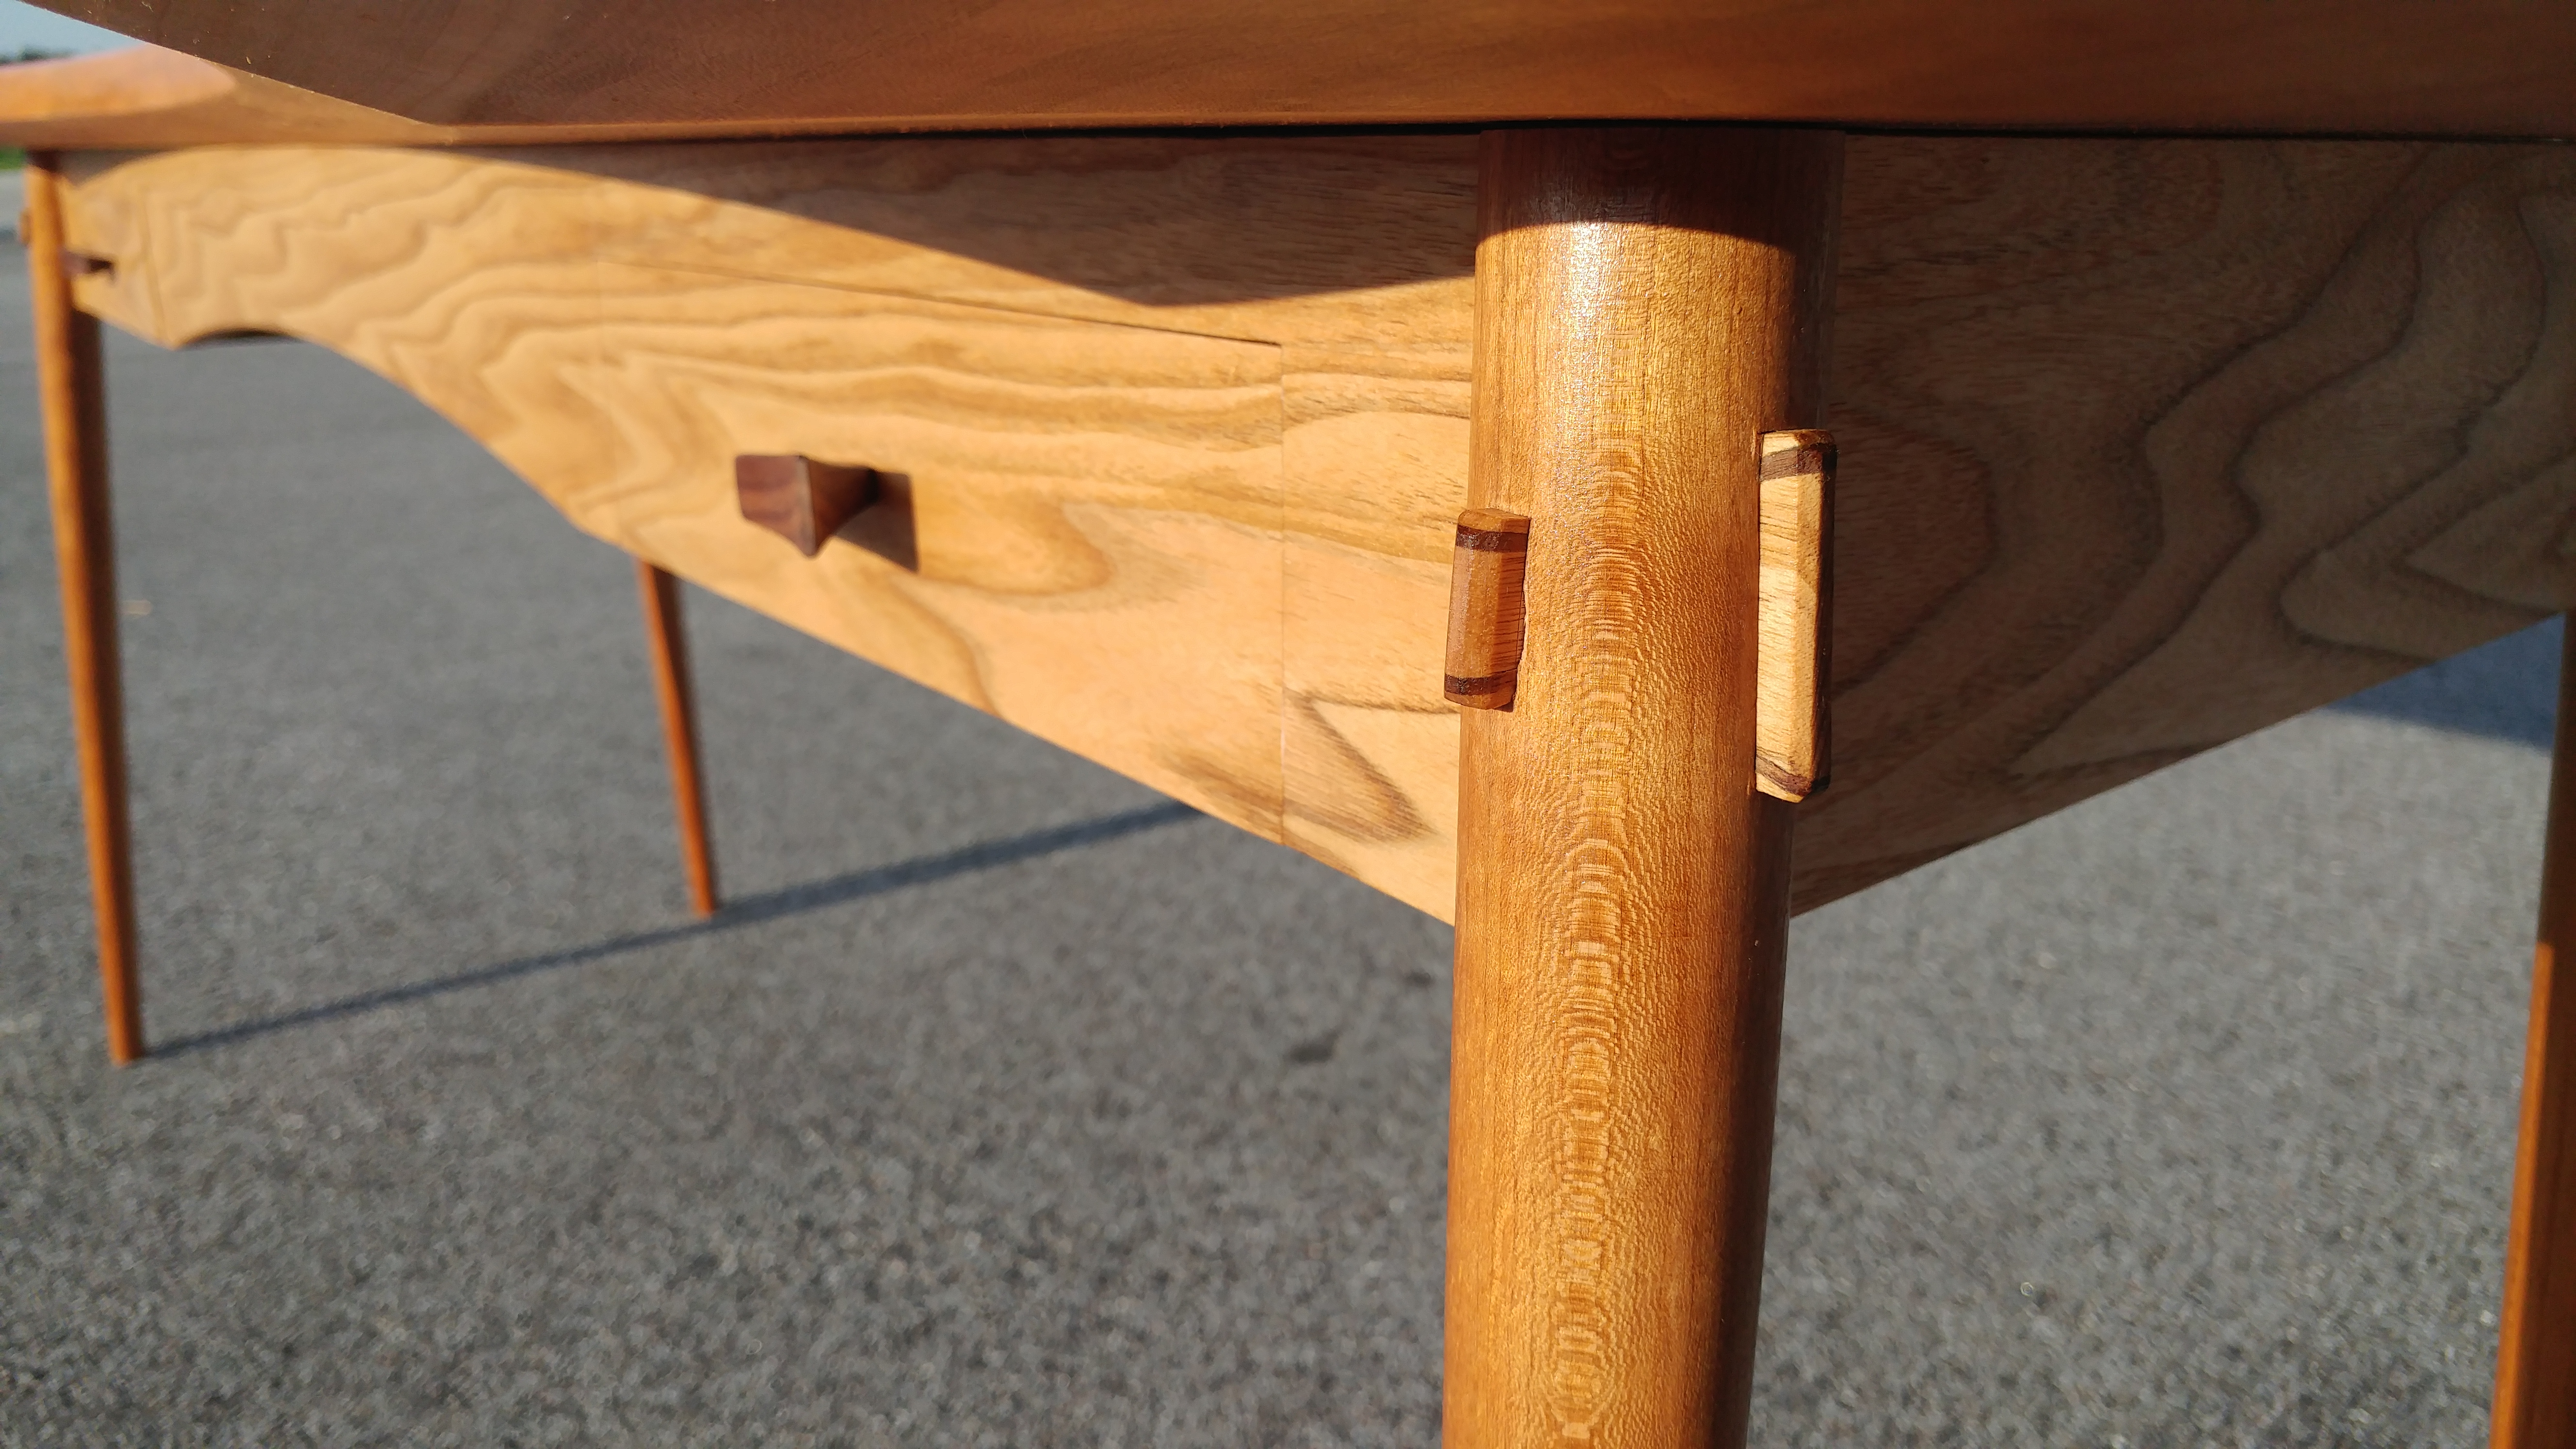 Leg joinery detail on finished desk